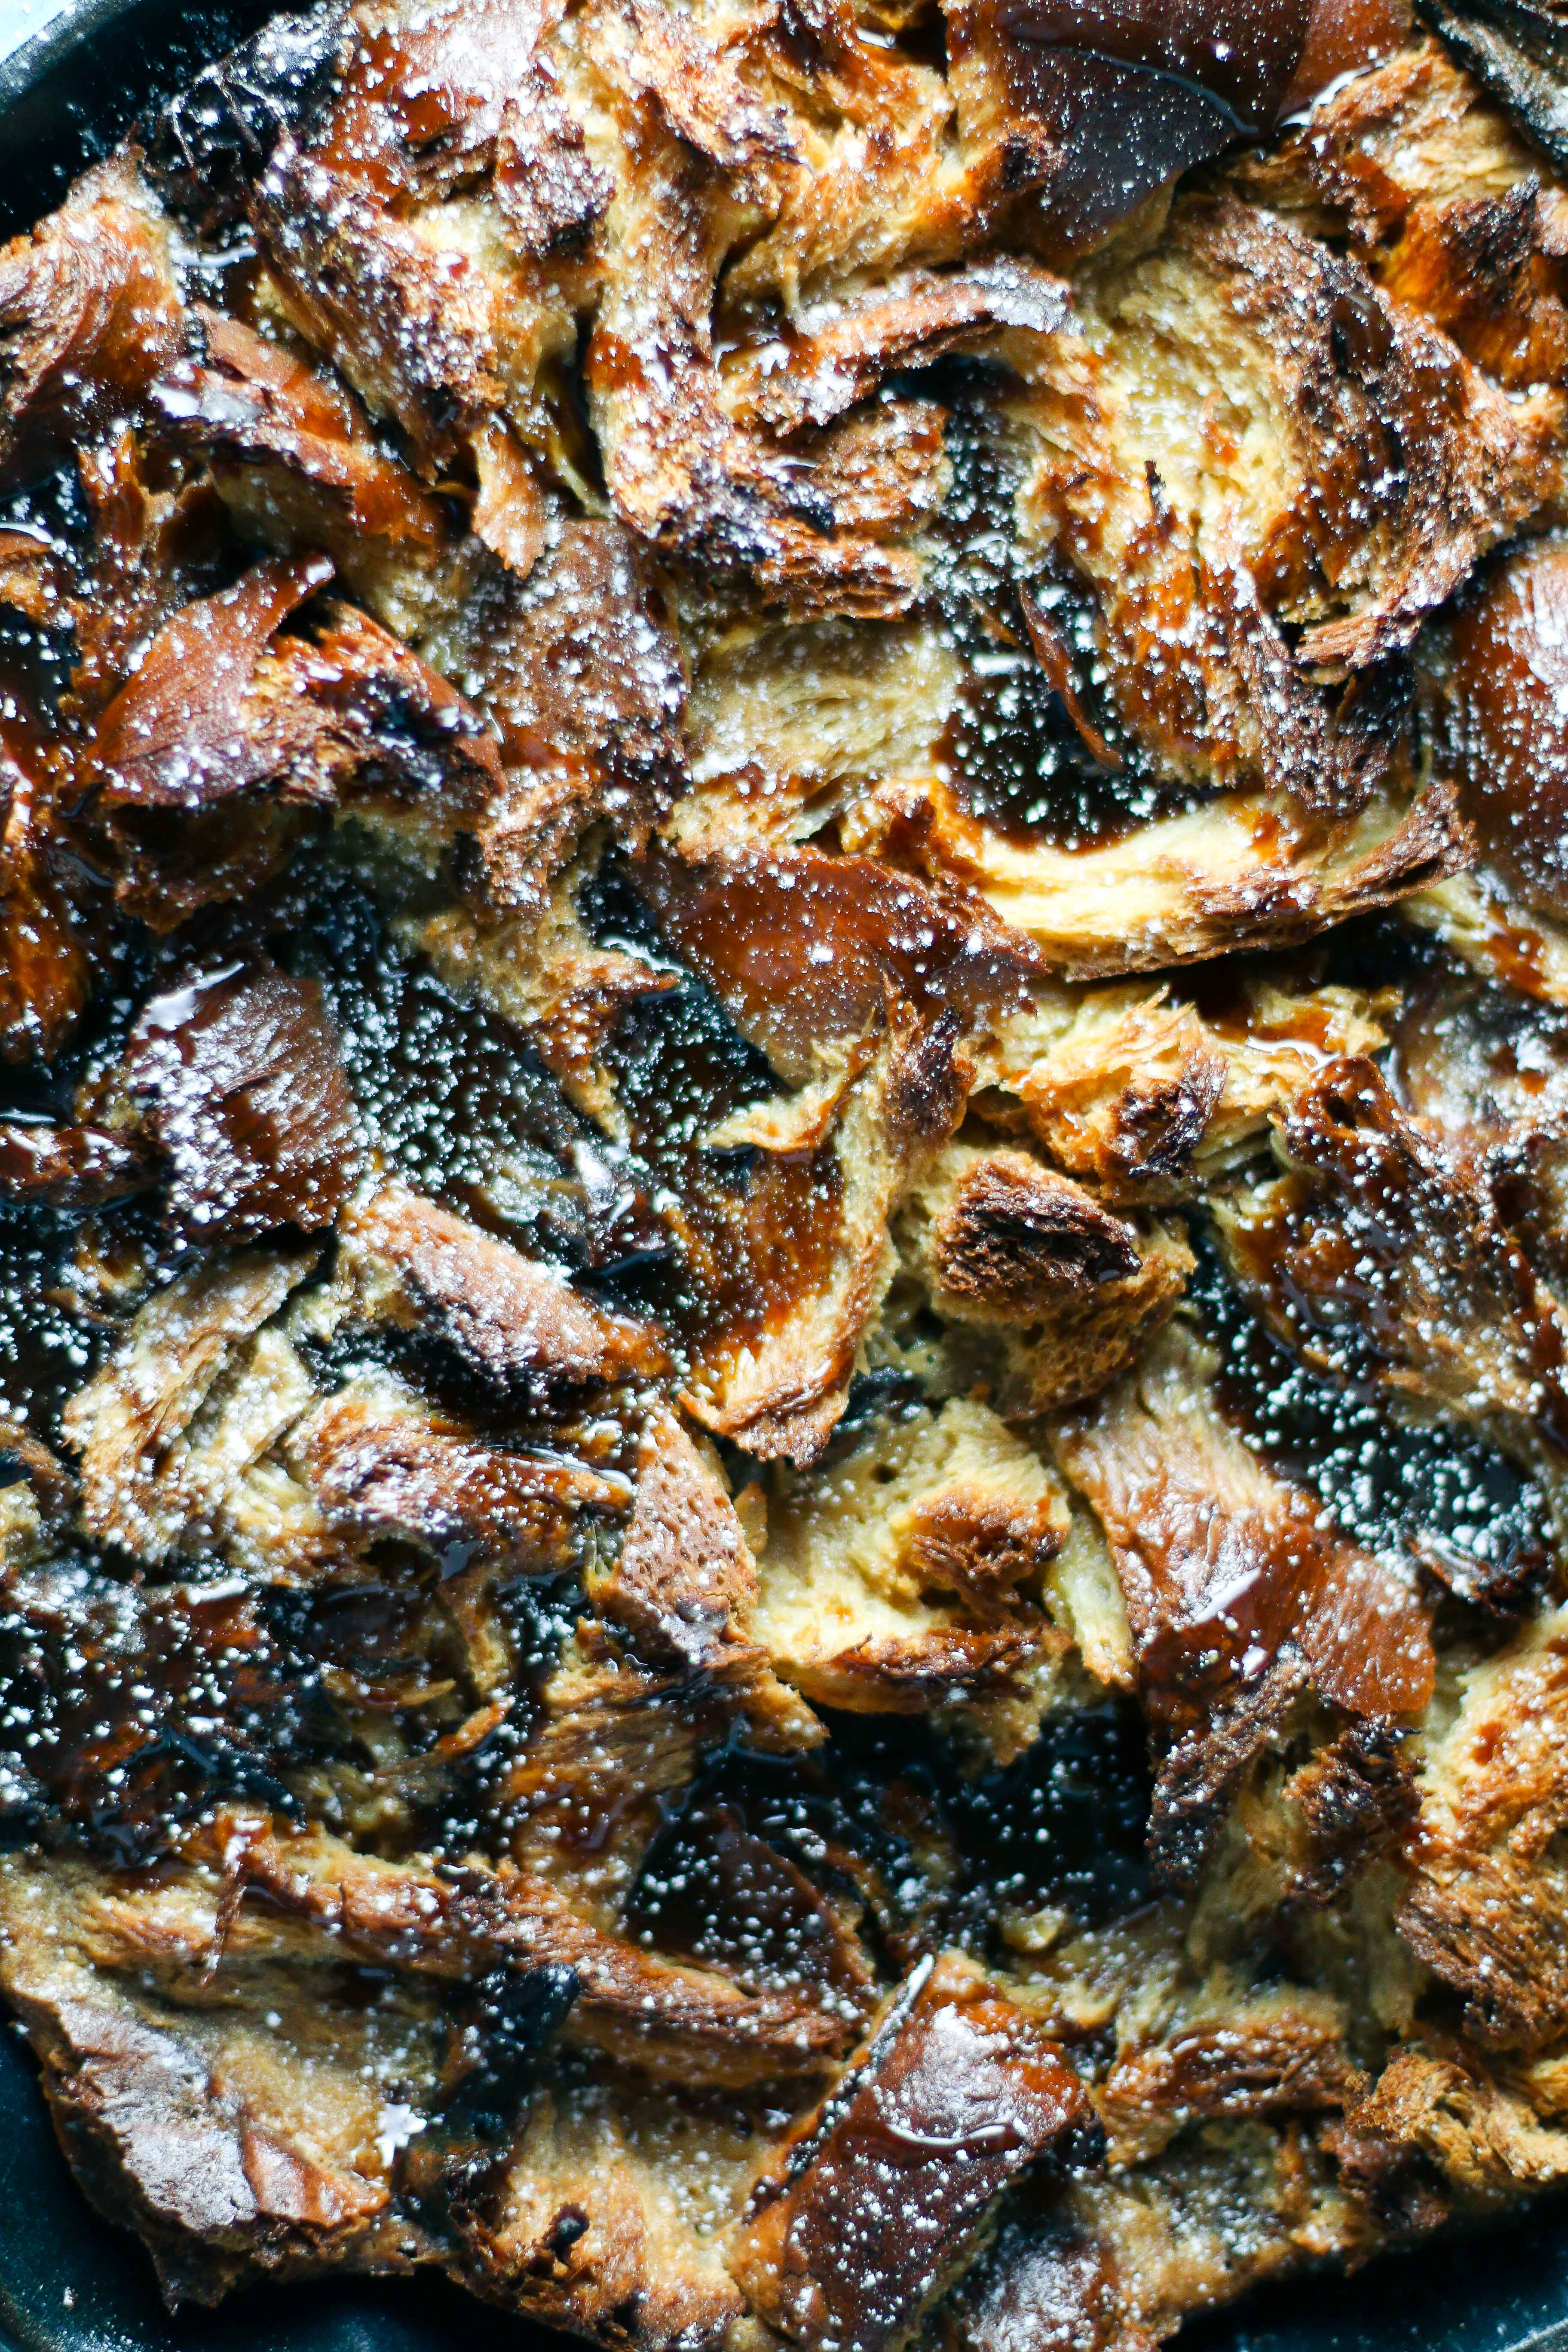 Whiskey Caramel Bread Pudding with Medjool Dates   I Will Not Eat Oysters